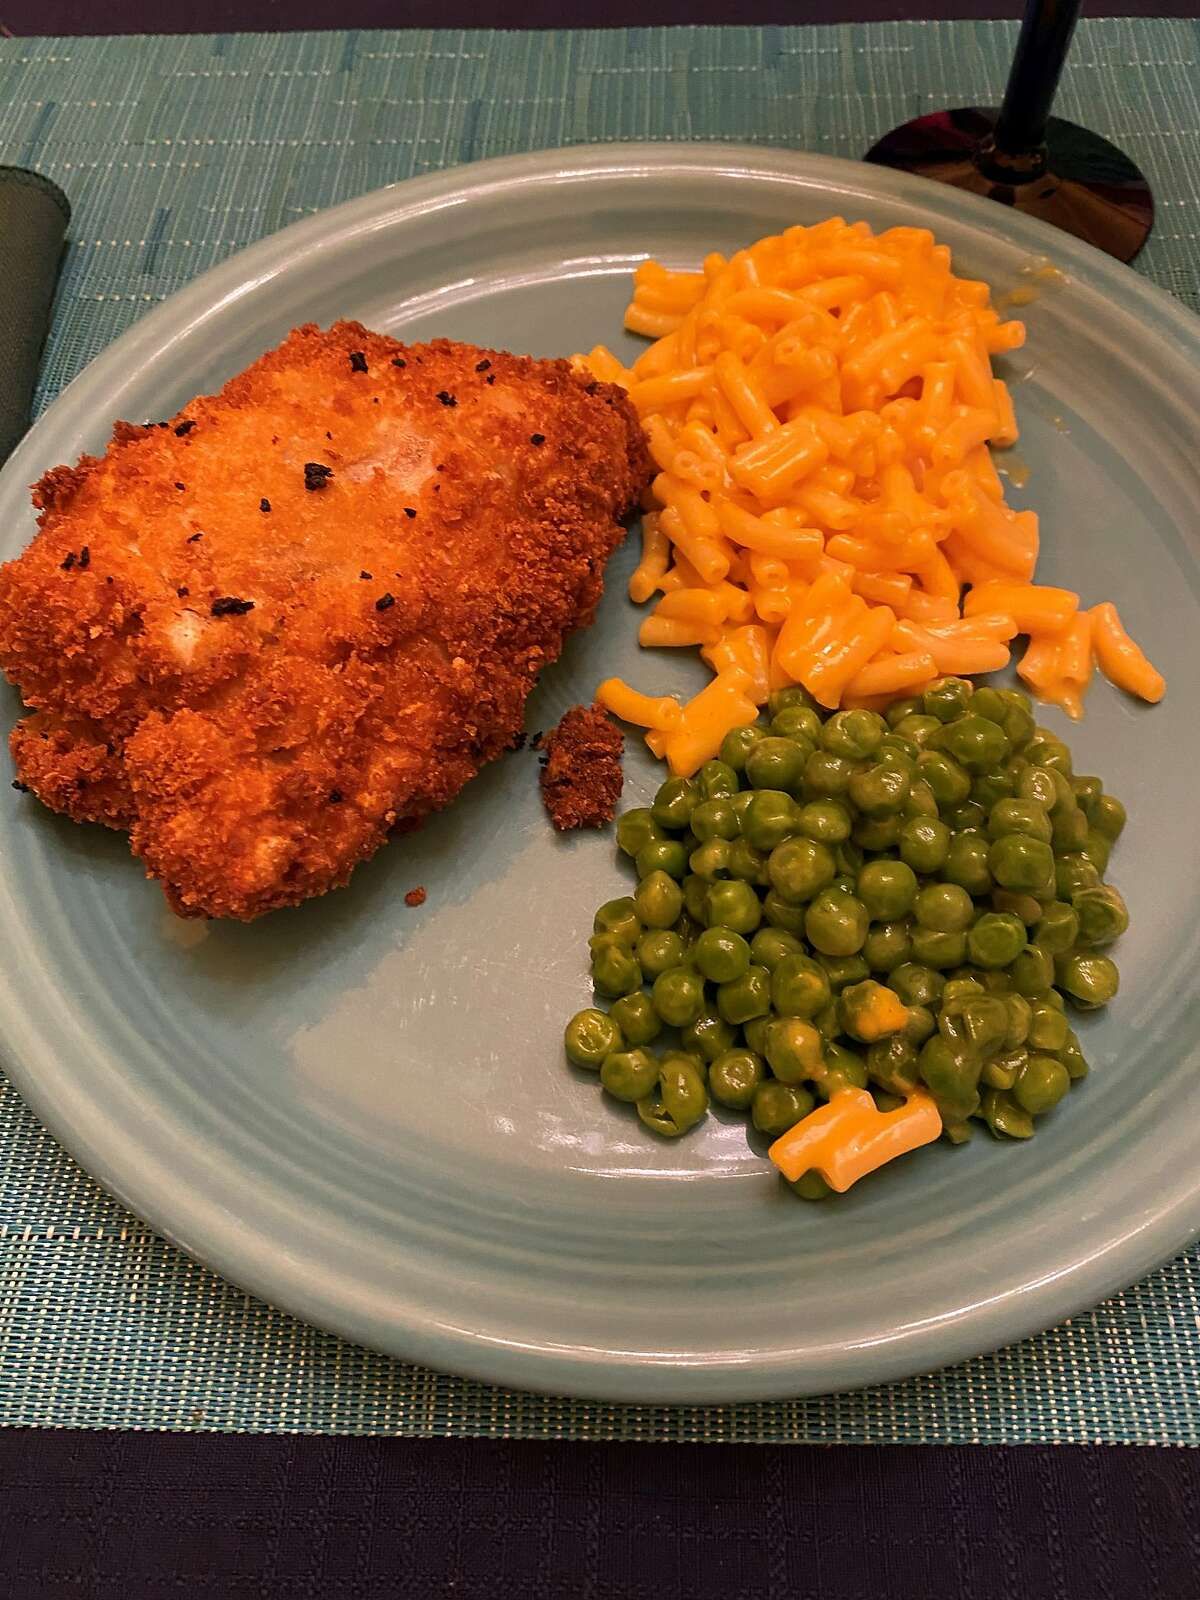 The fried chicken meal Zane Fisher-Paulson cooked for his family in early March 2021.